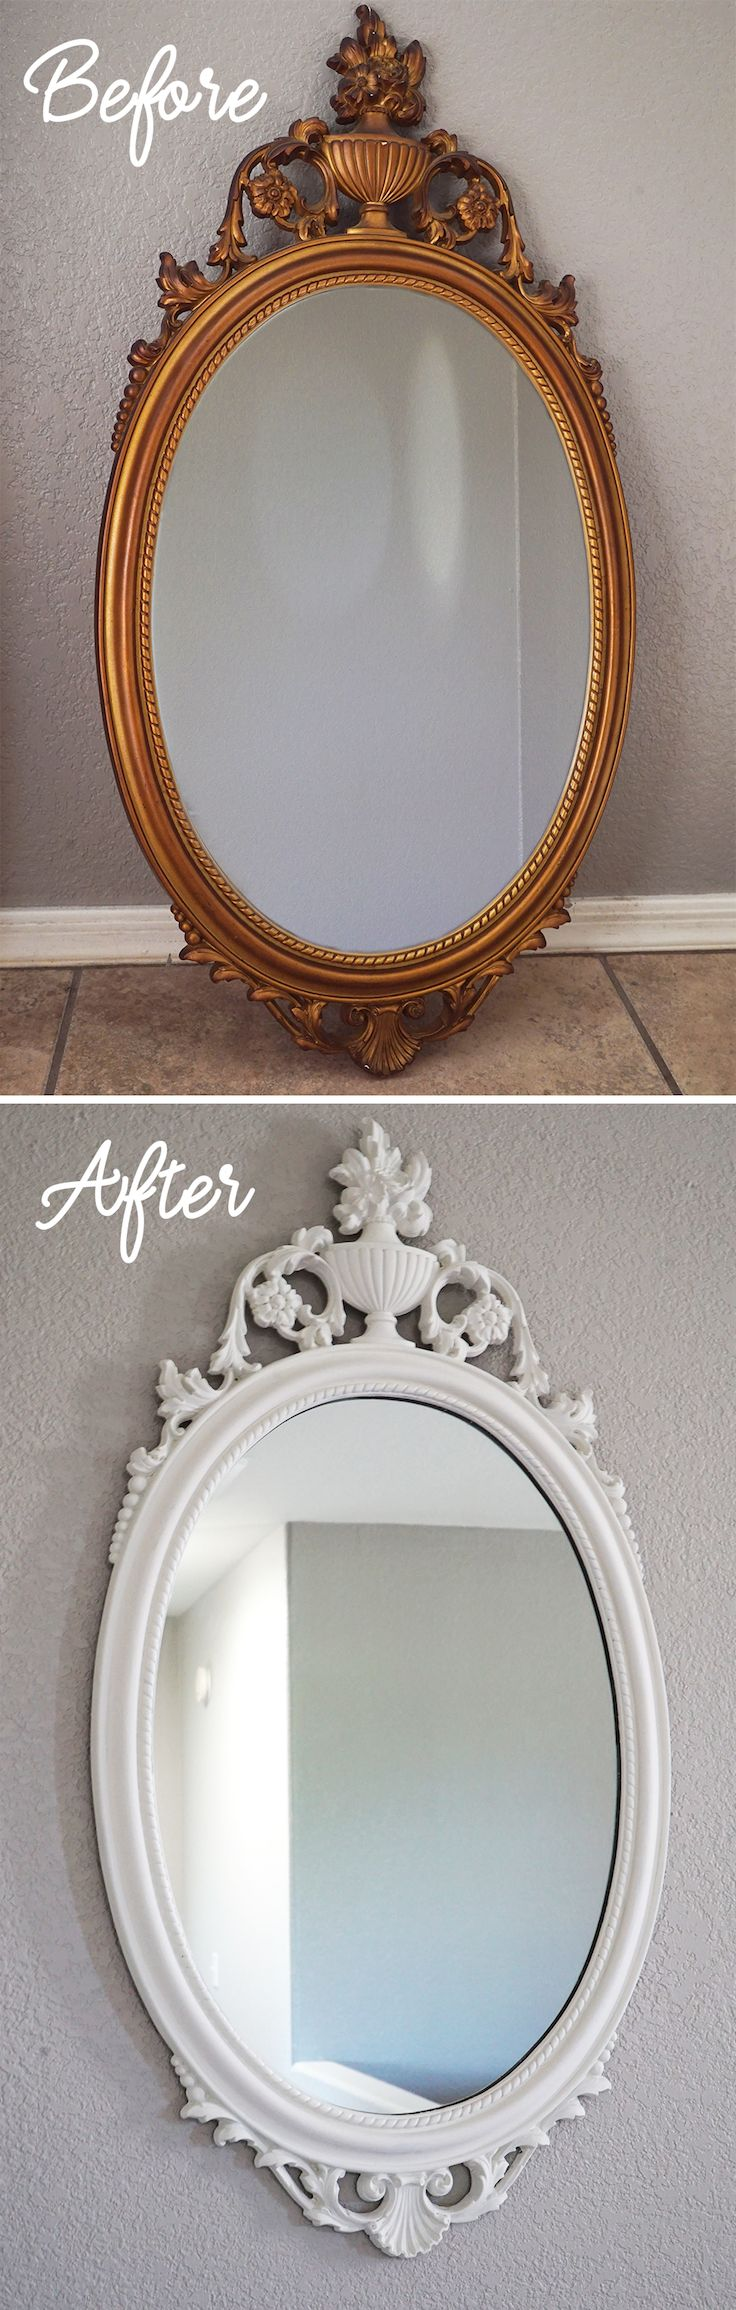 How to Chalk Paint an Antique Mirror | Vintage Mirror | Chalk Painting Techniques | How to Chalk Paint Decor | Chalk Painted Vintage Decor | DIY Chalk Paint Crafts | Weekend Chalk Paint Projects | Goodwill Decor | Chalk Painting Old Decor